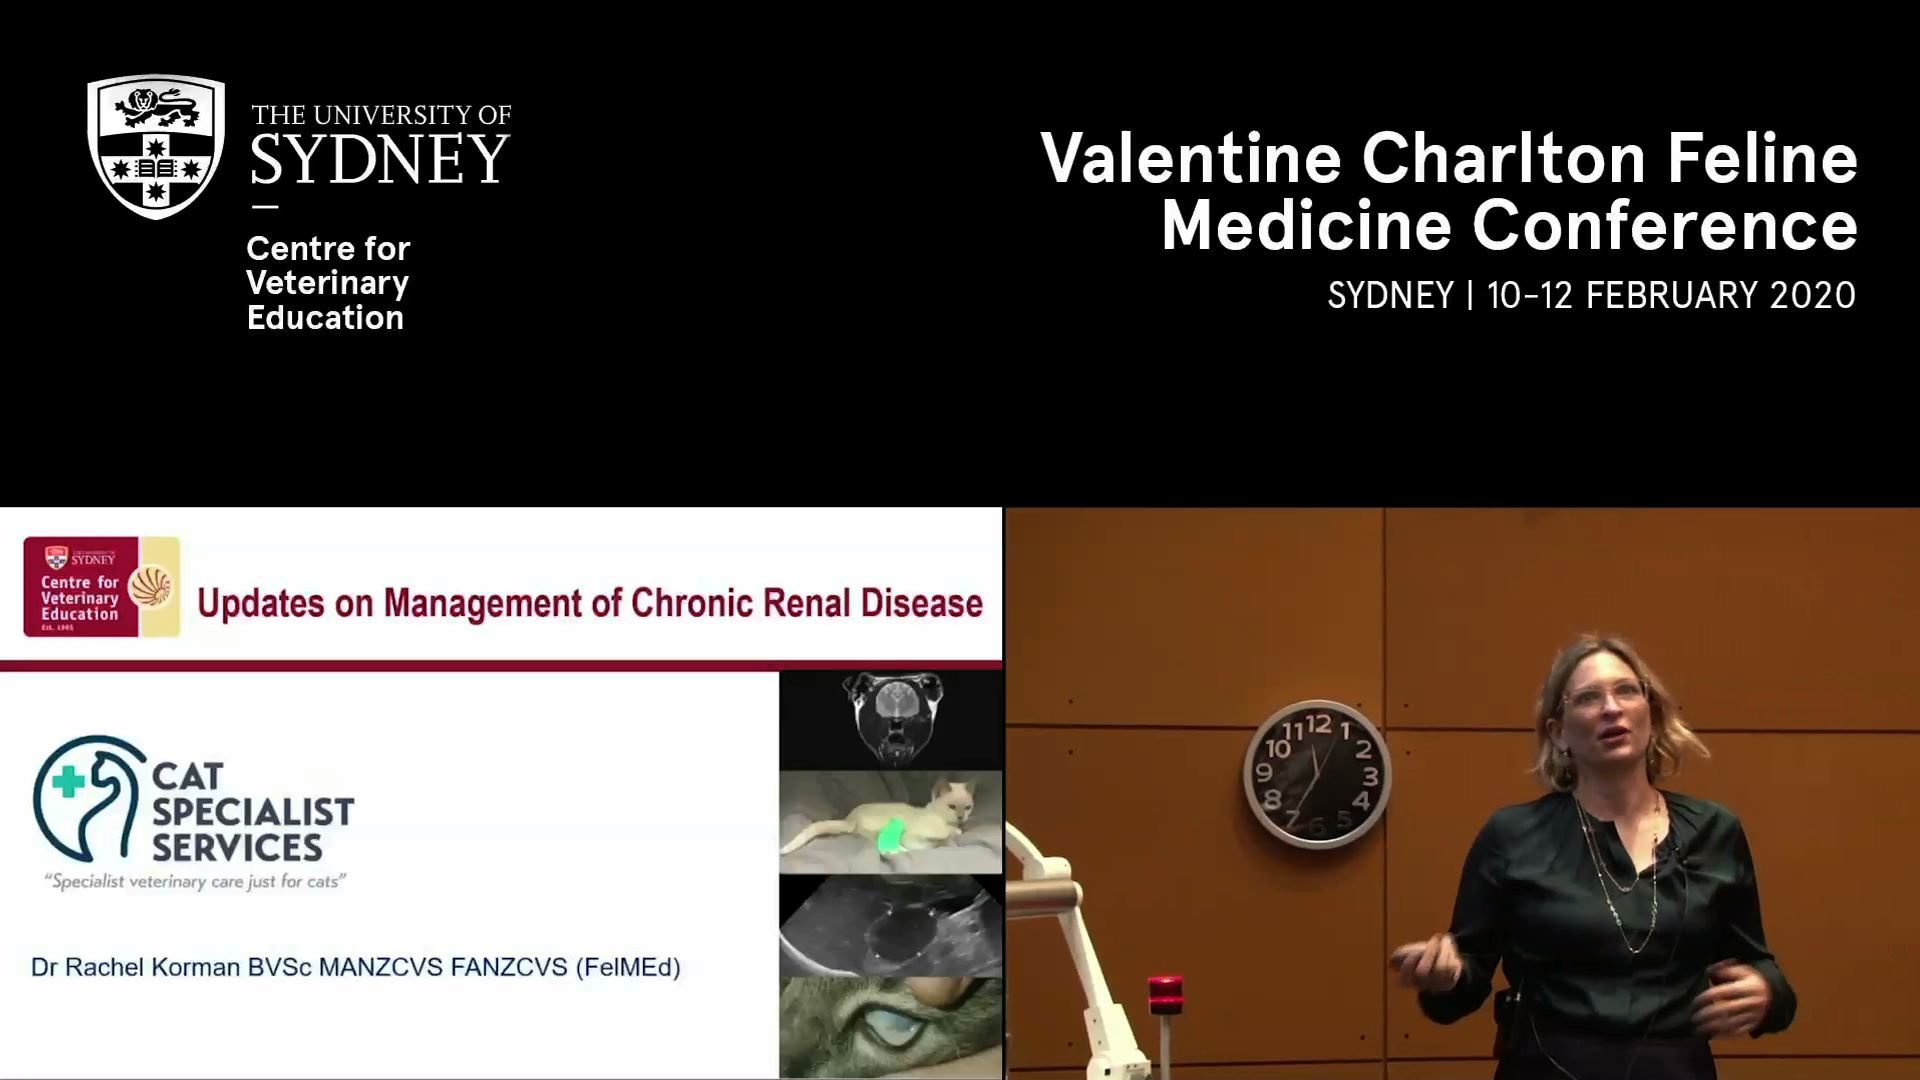 Updates on management of chronic renal disease (incl. IRIS staging)